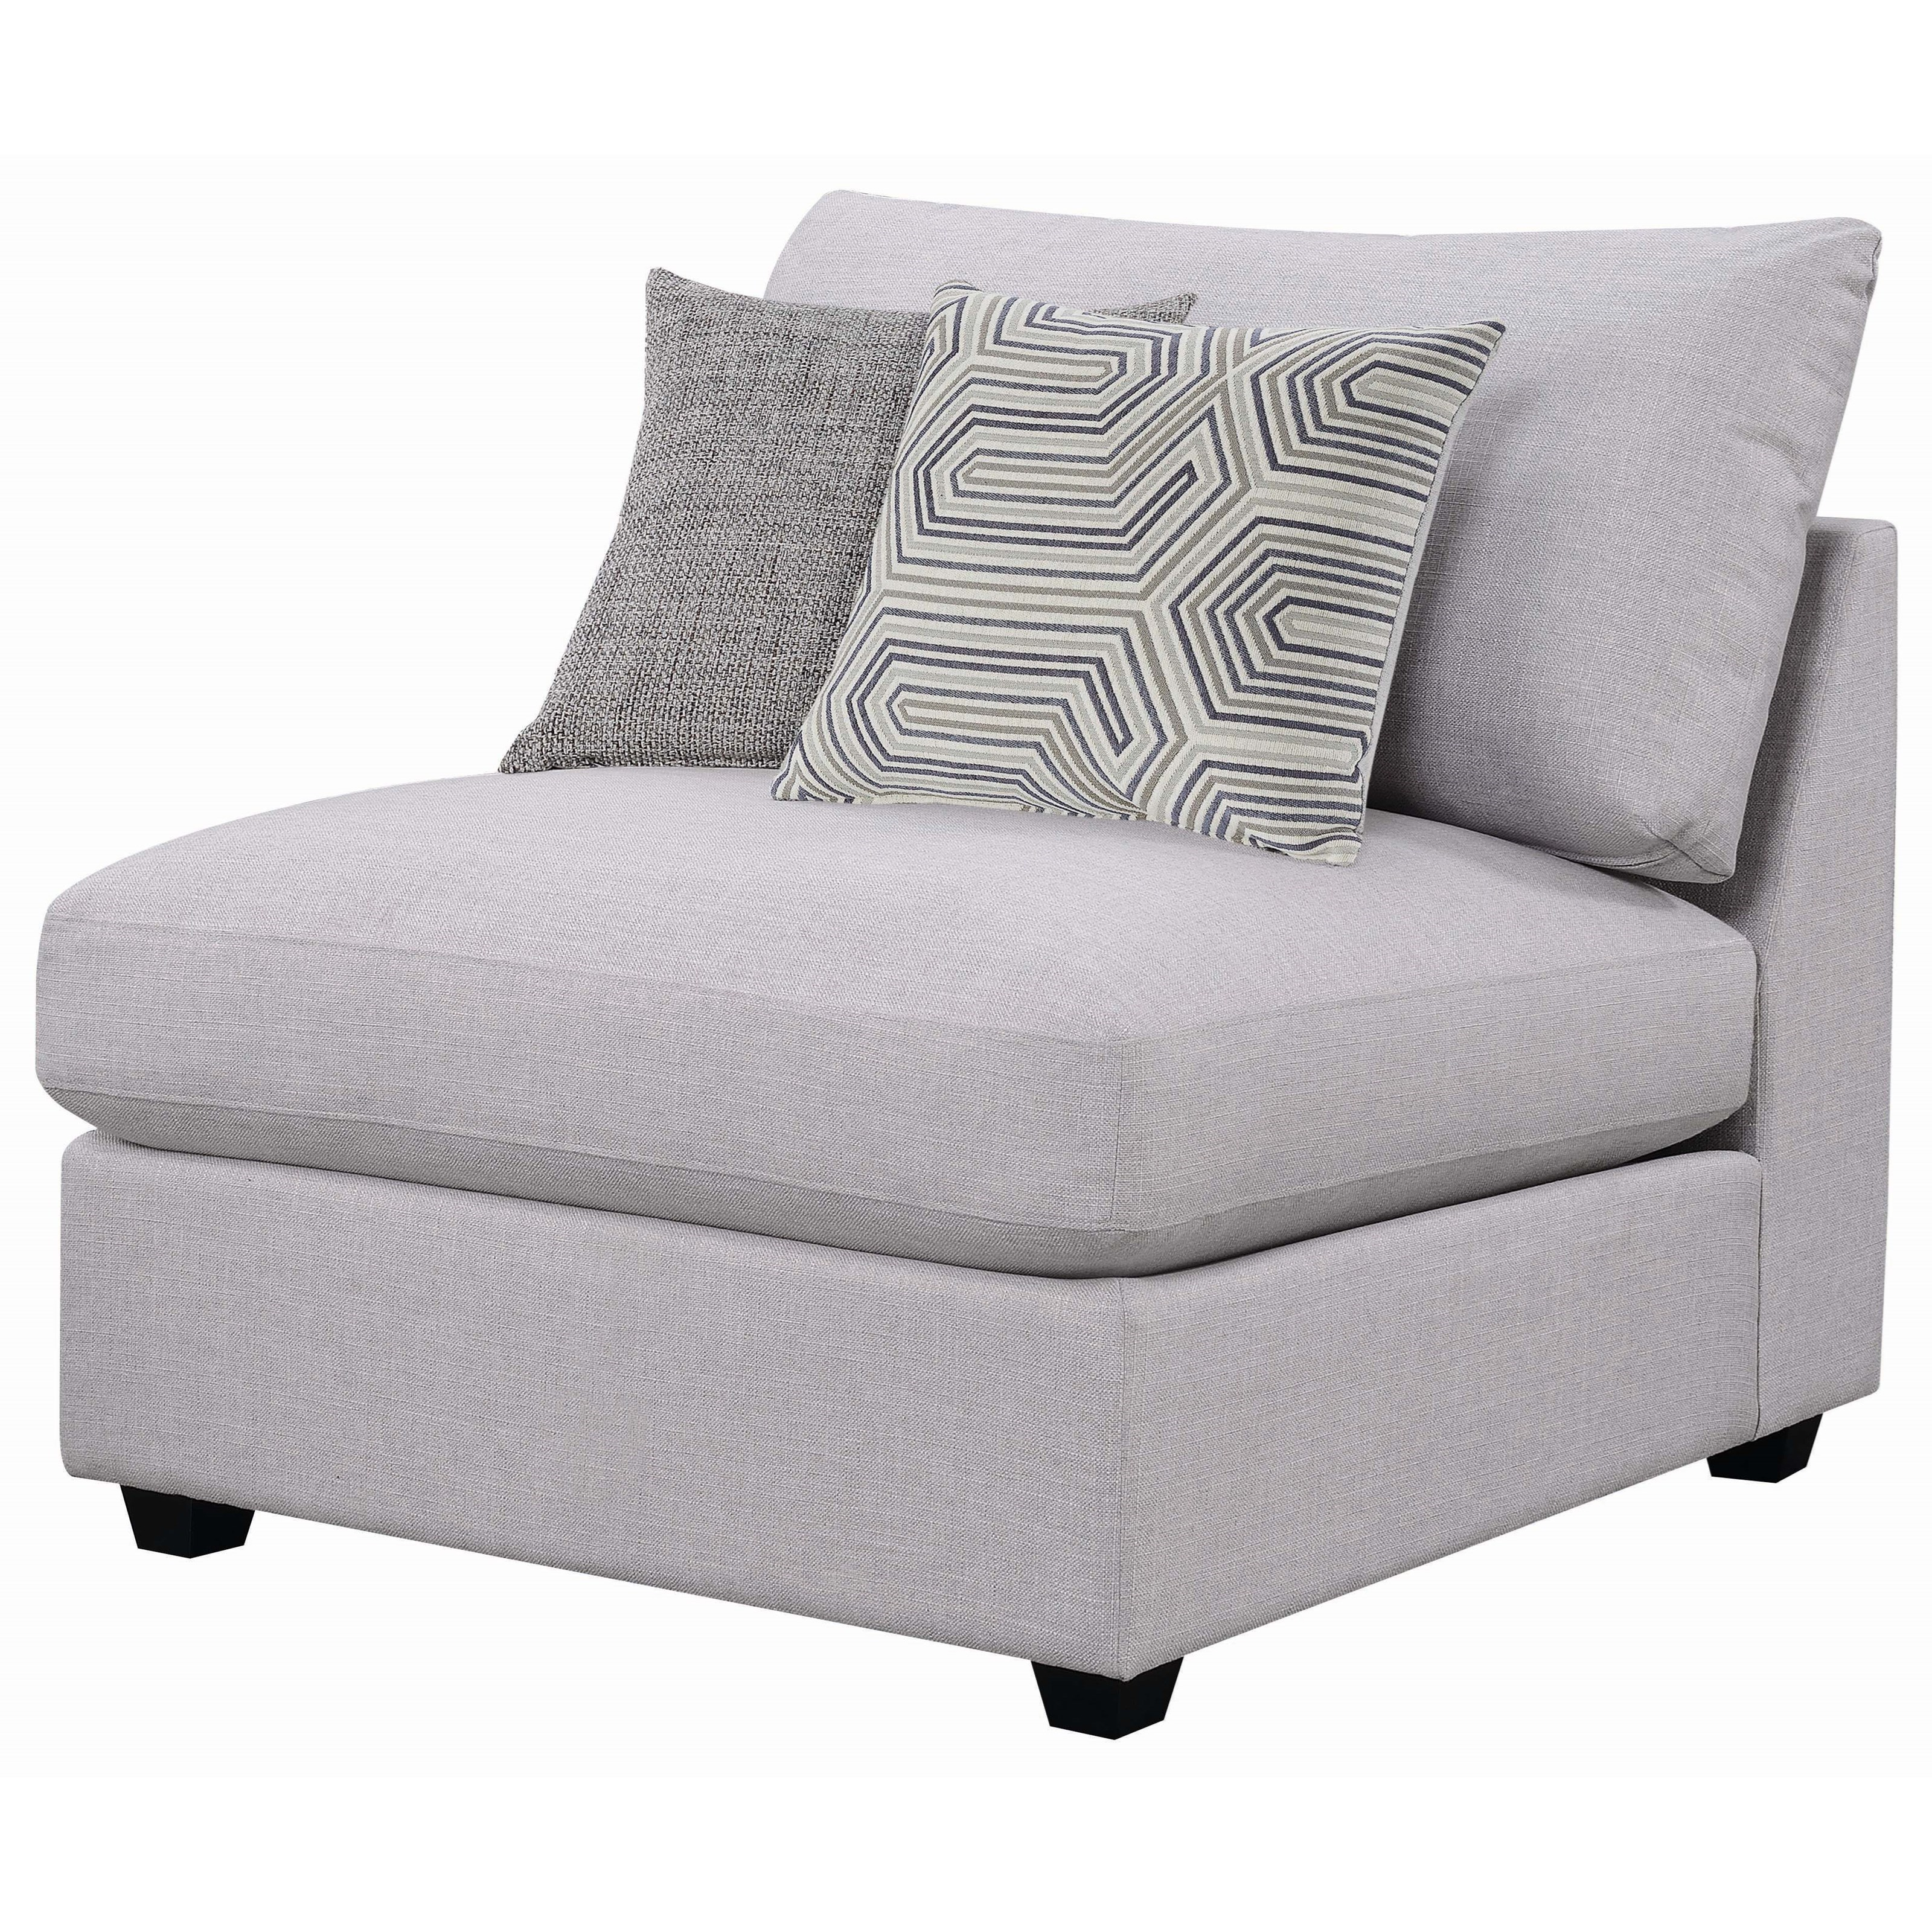 scott living charlotte modular sectional with storage